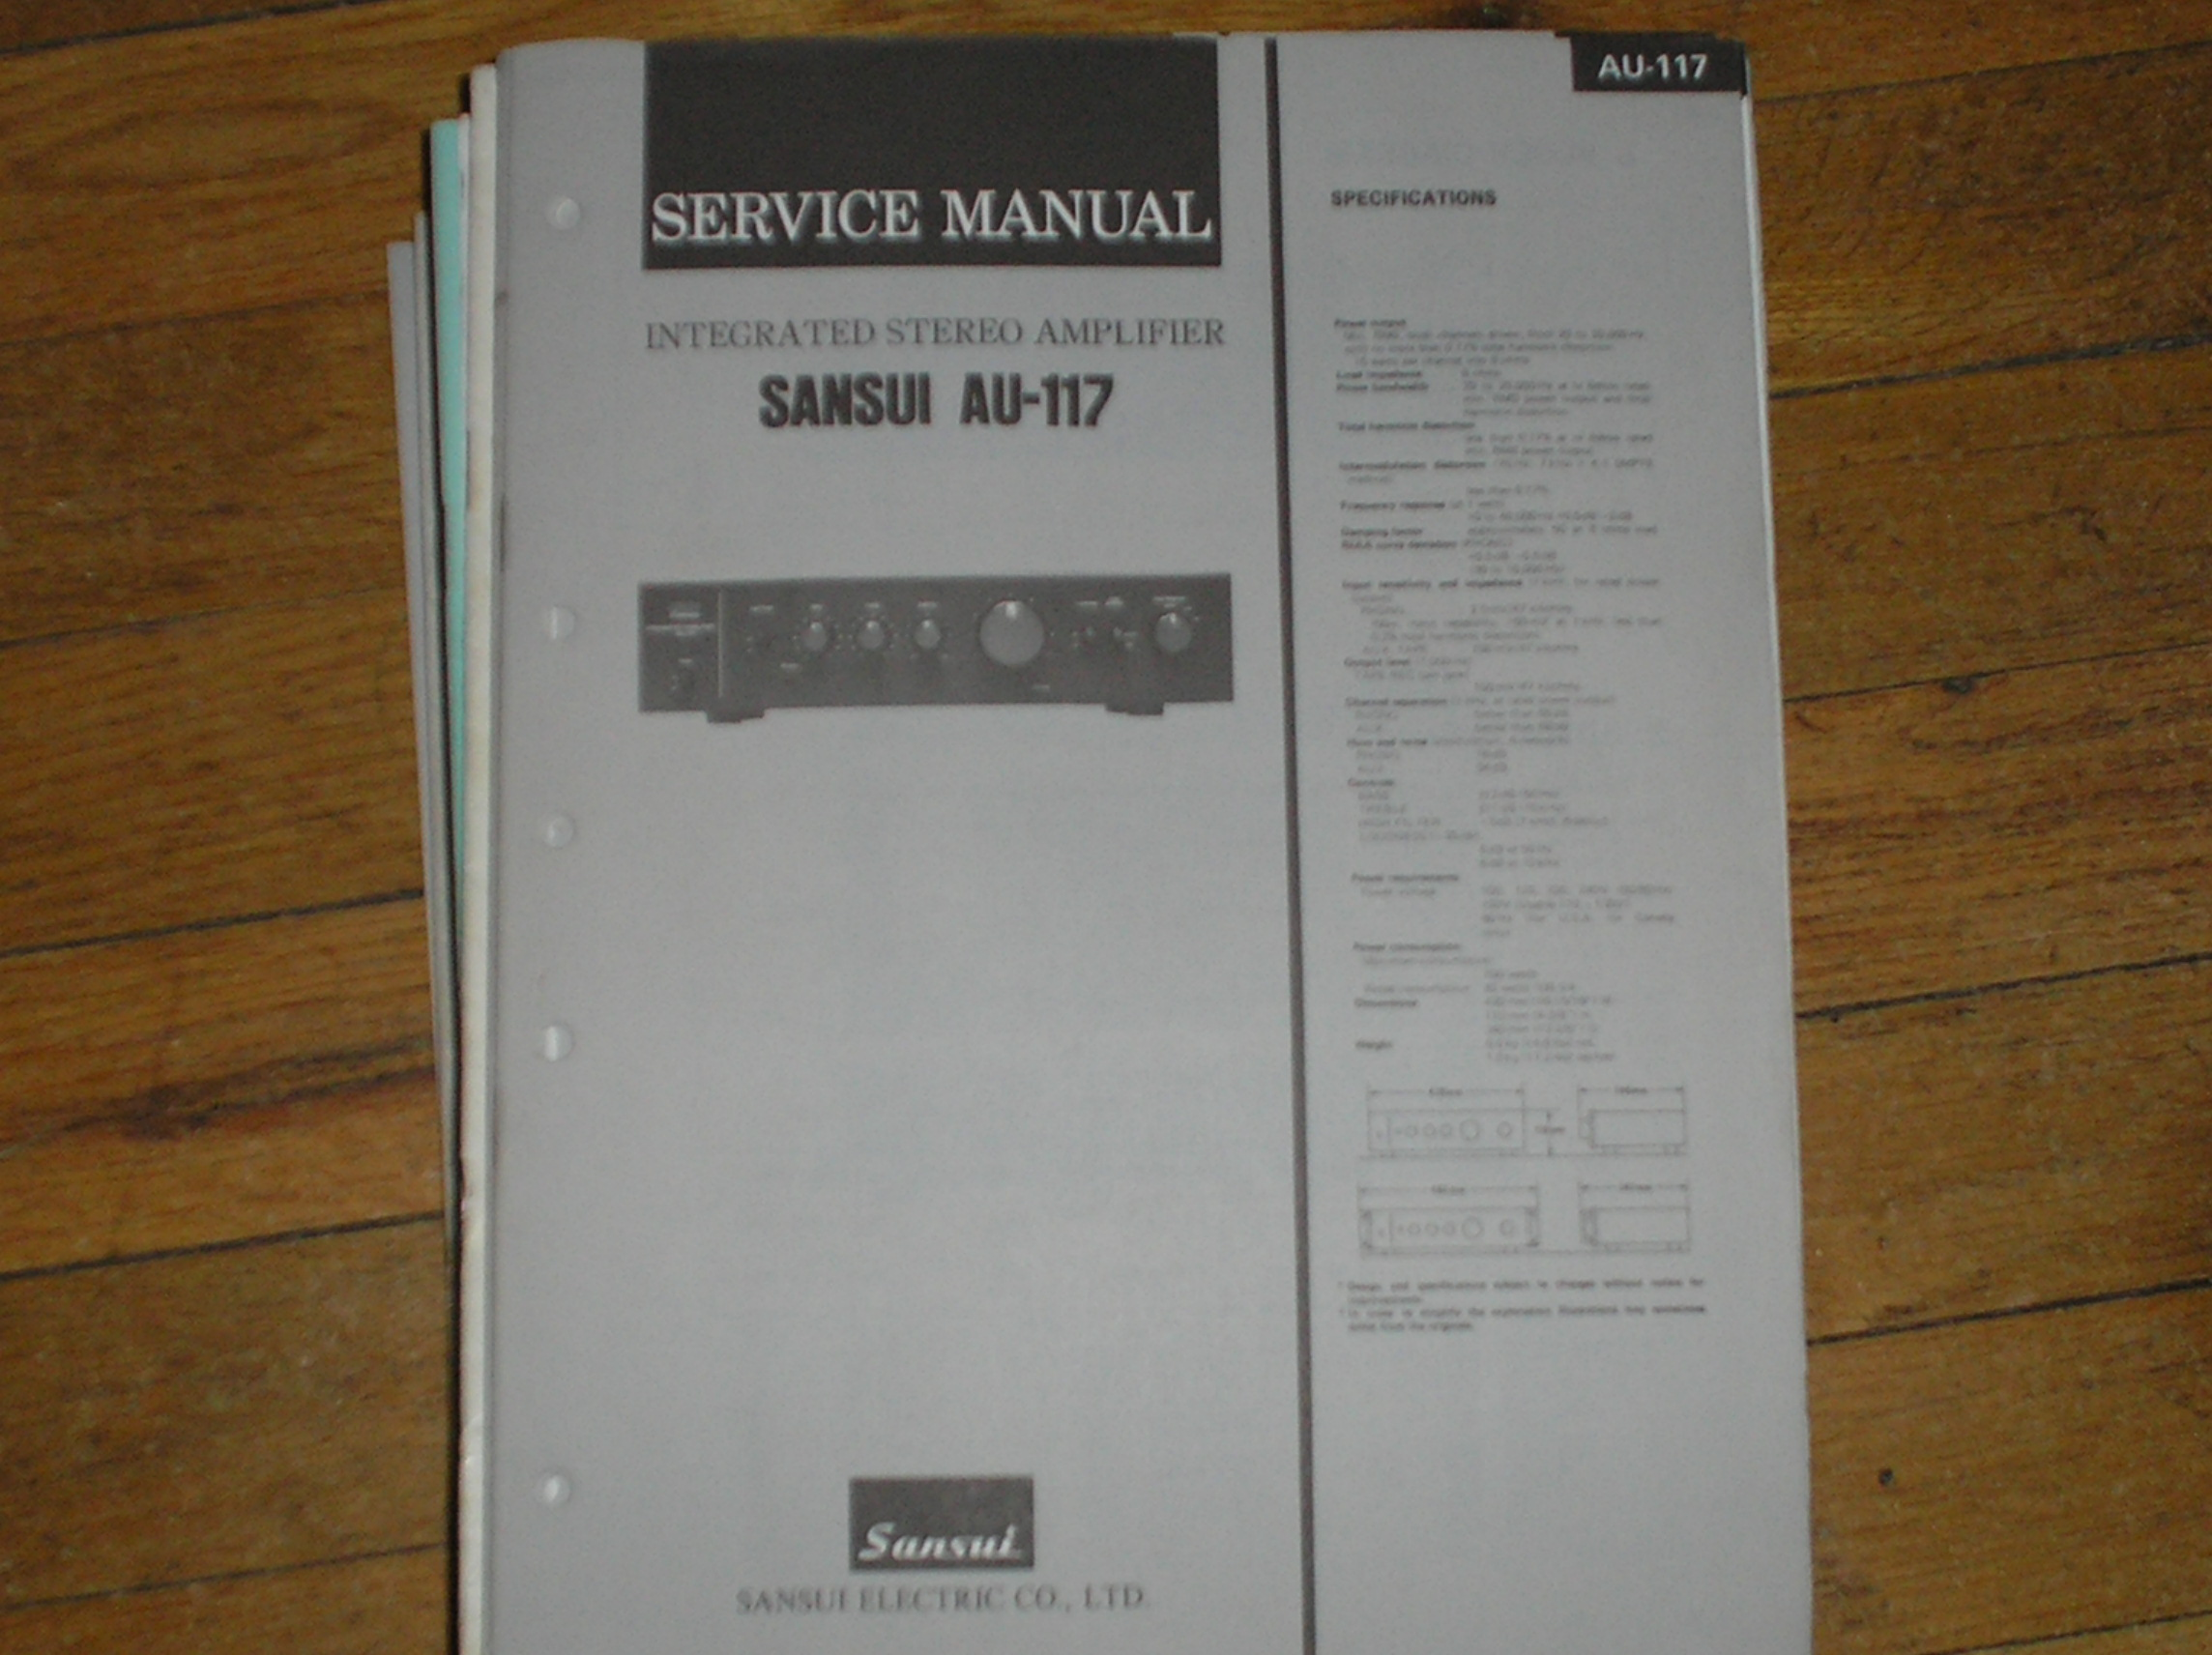 AU-117 Amplifier Service Manual